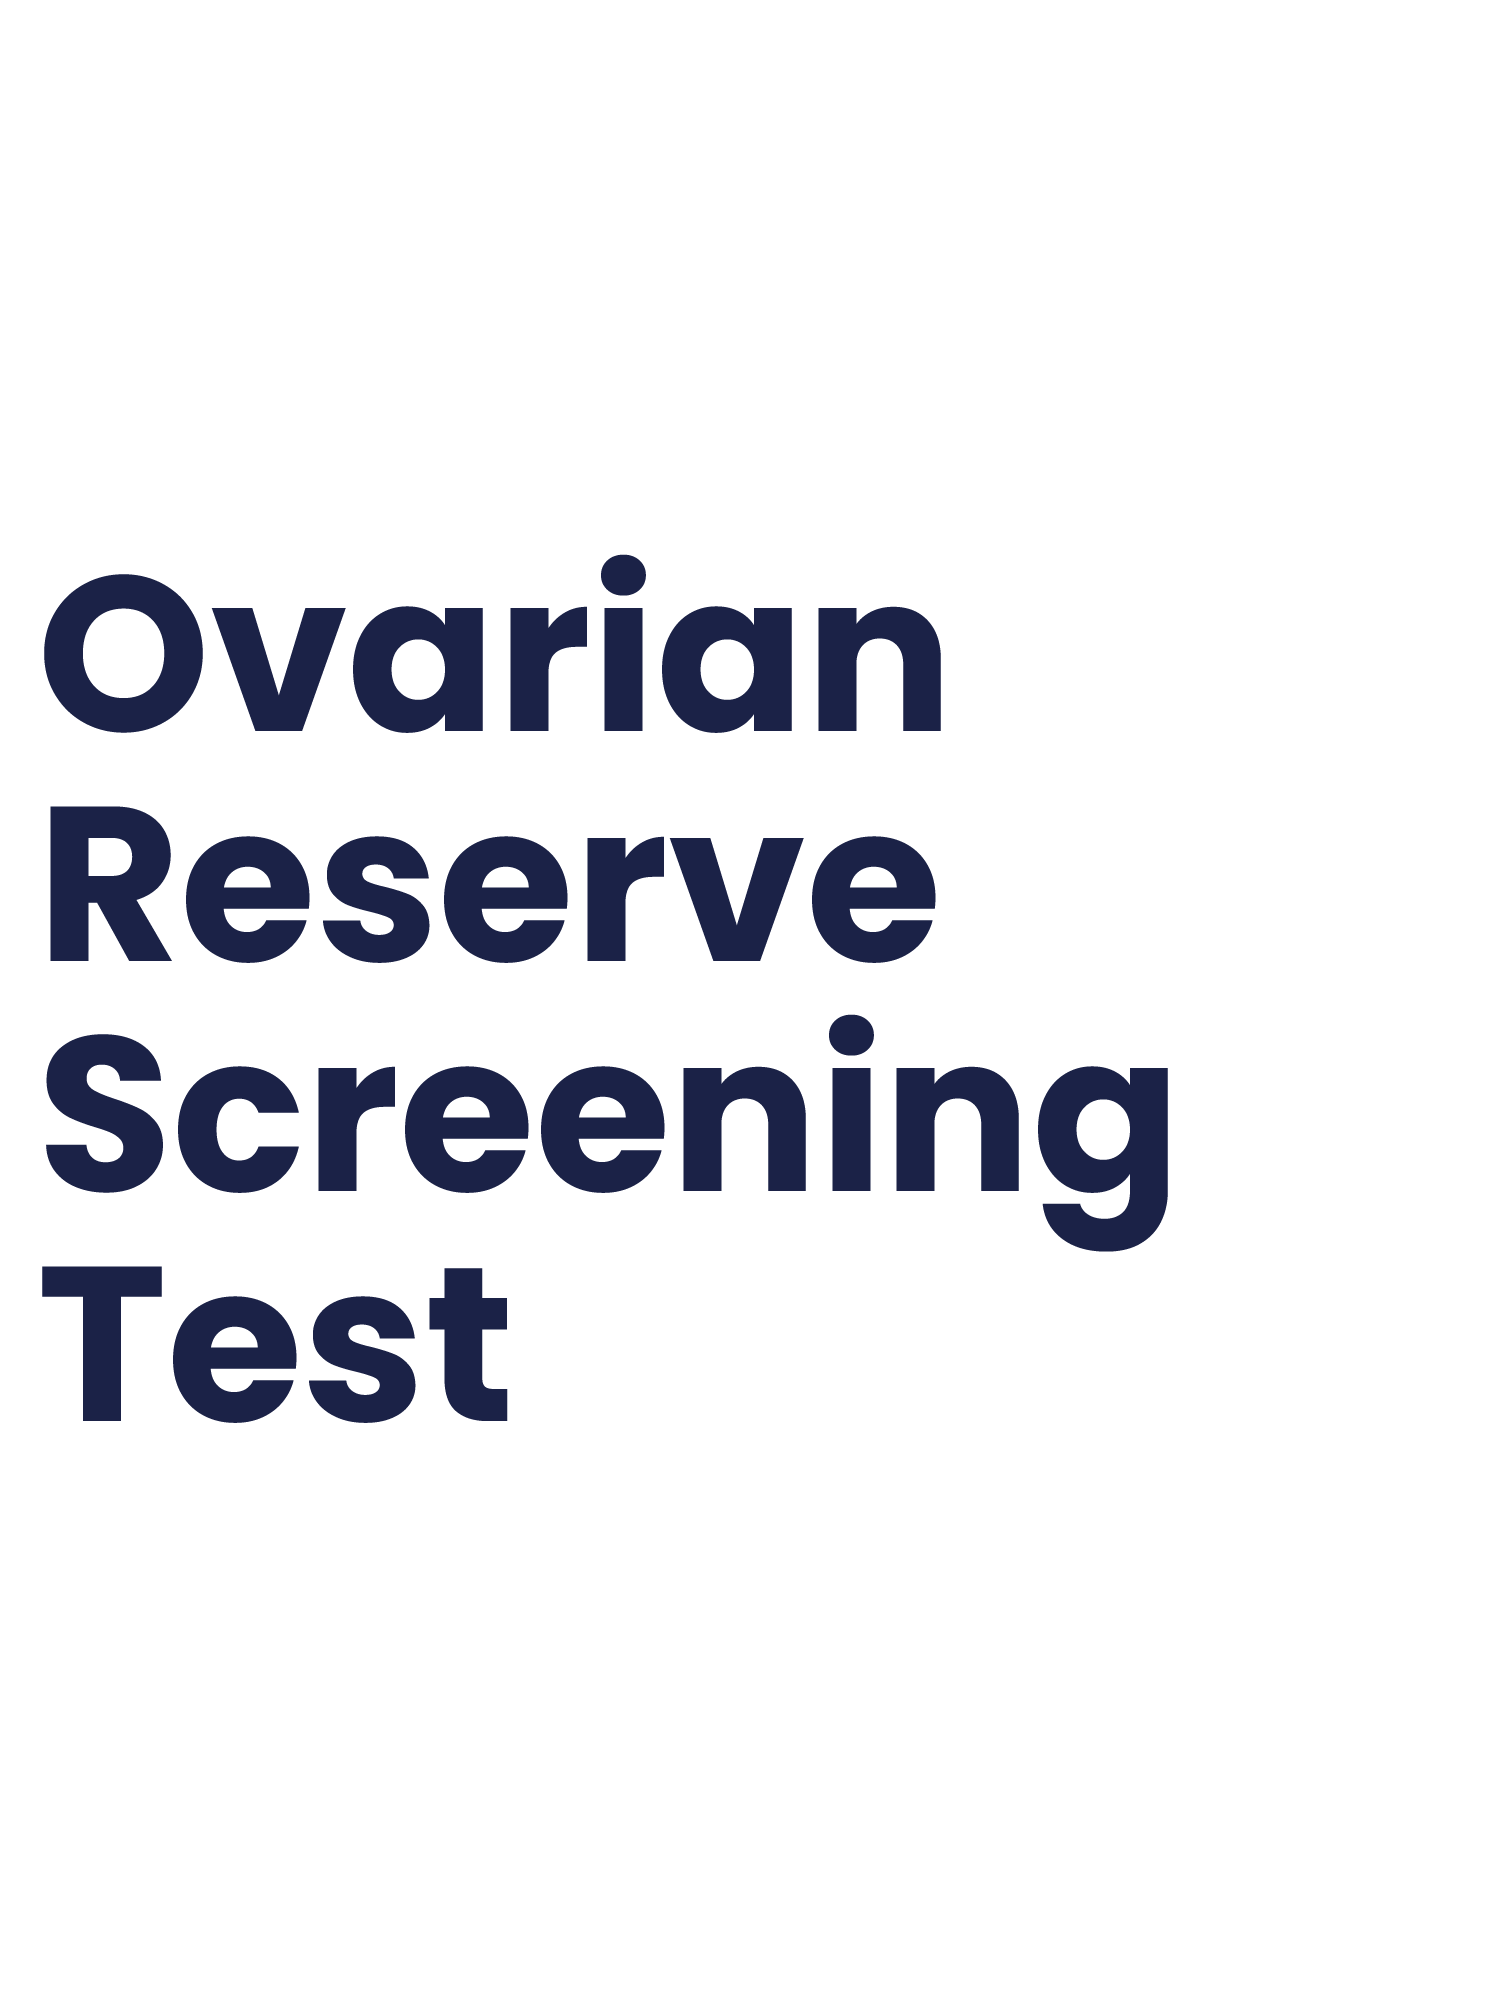 Ovarian Reserve Screening Test